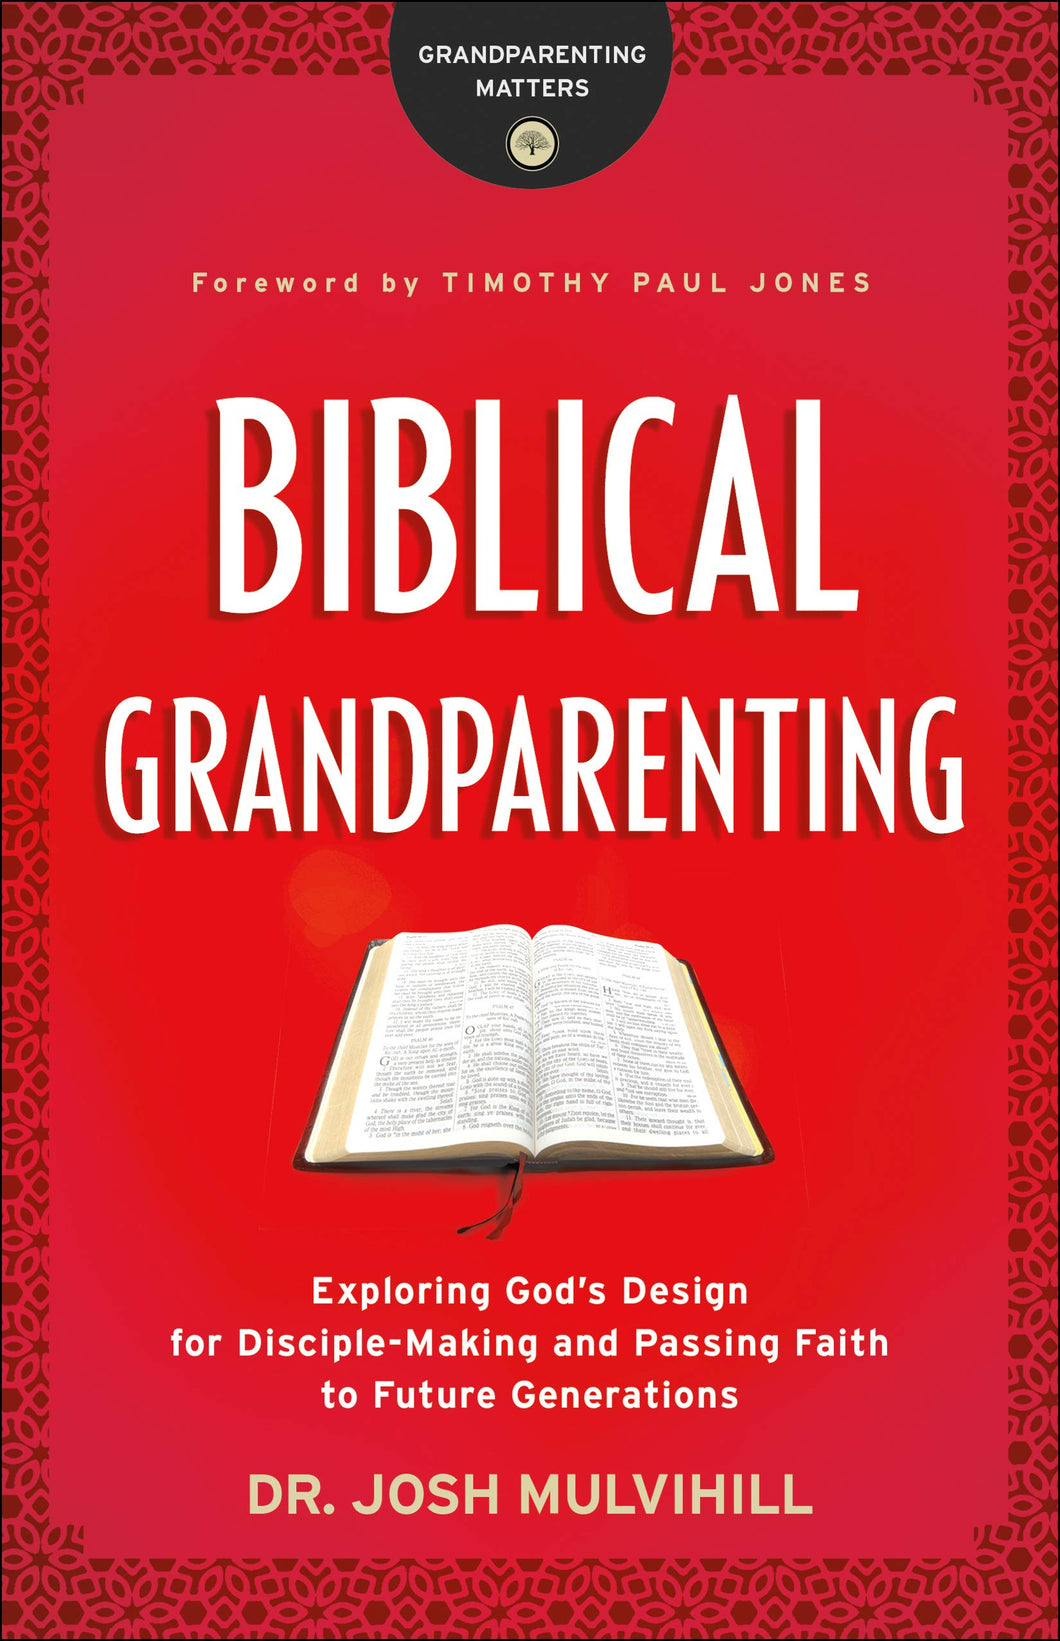 Biblical Grandparenting by Dr. Josh Mulvihill